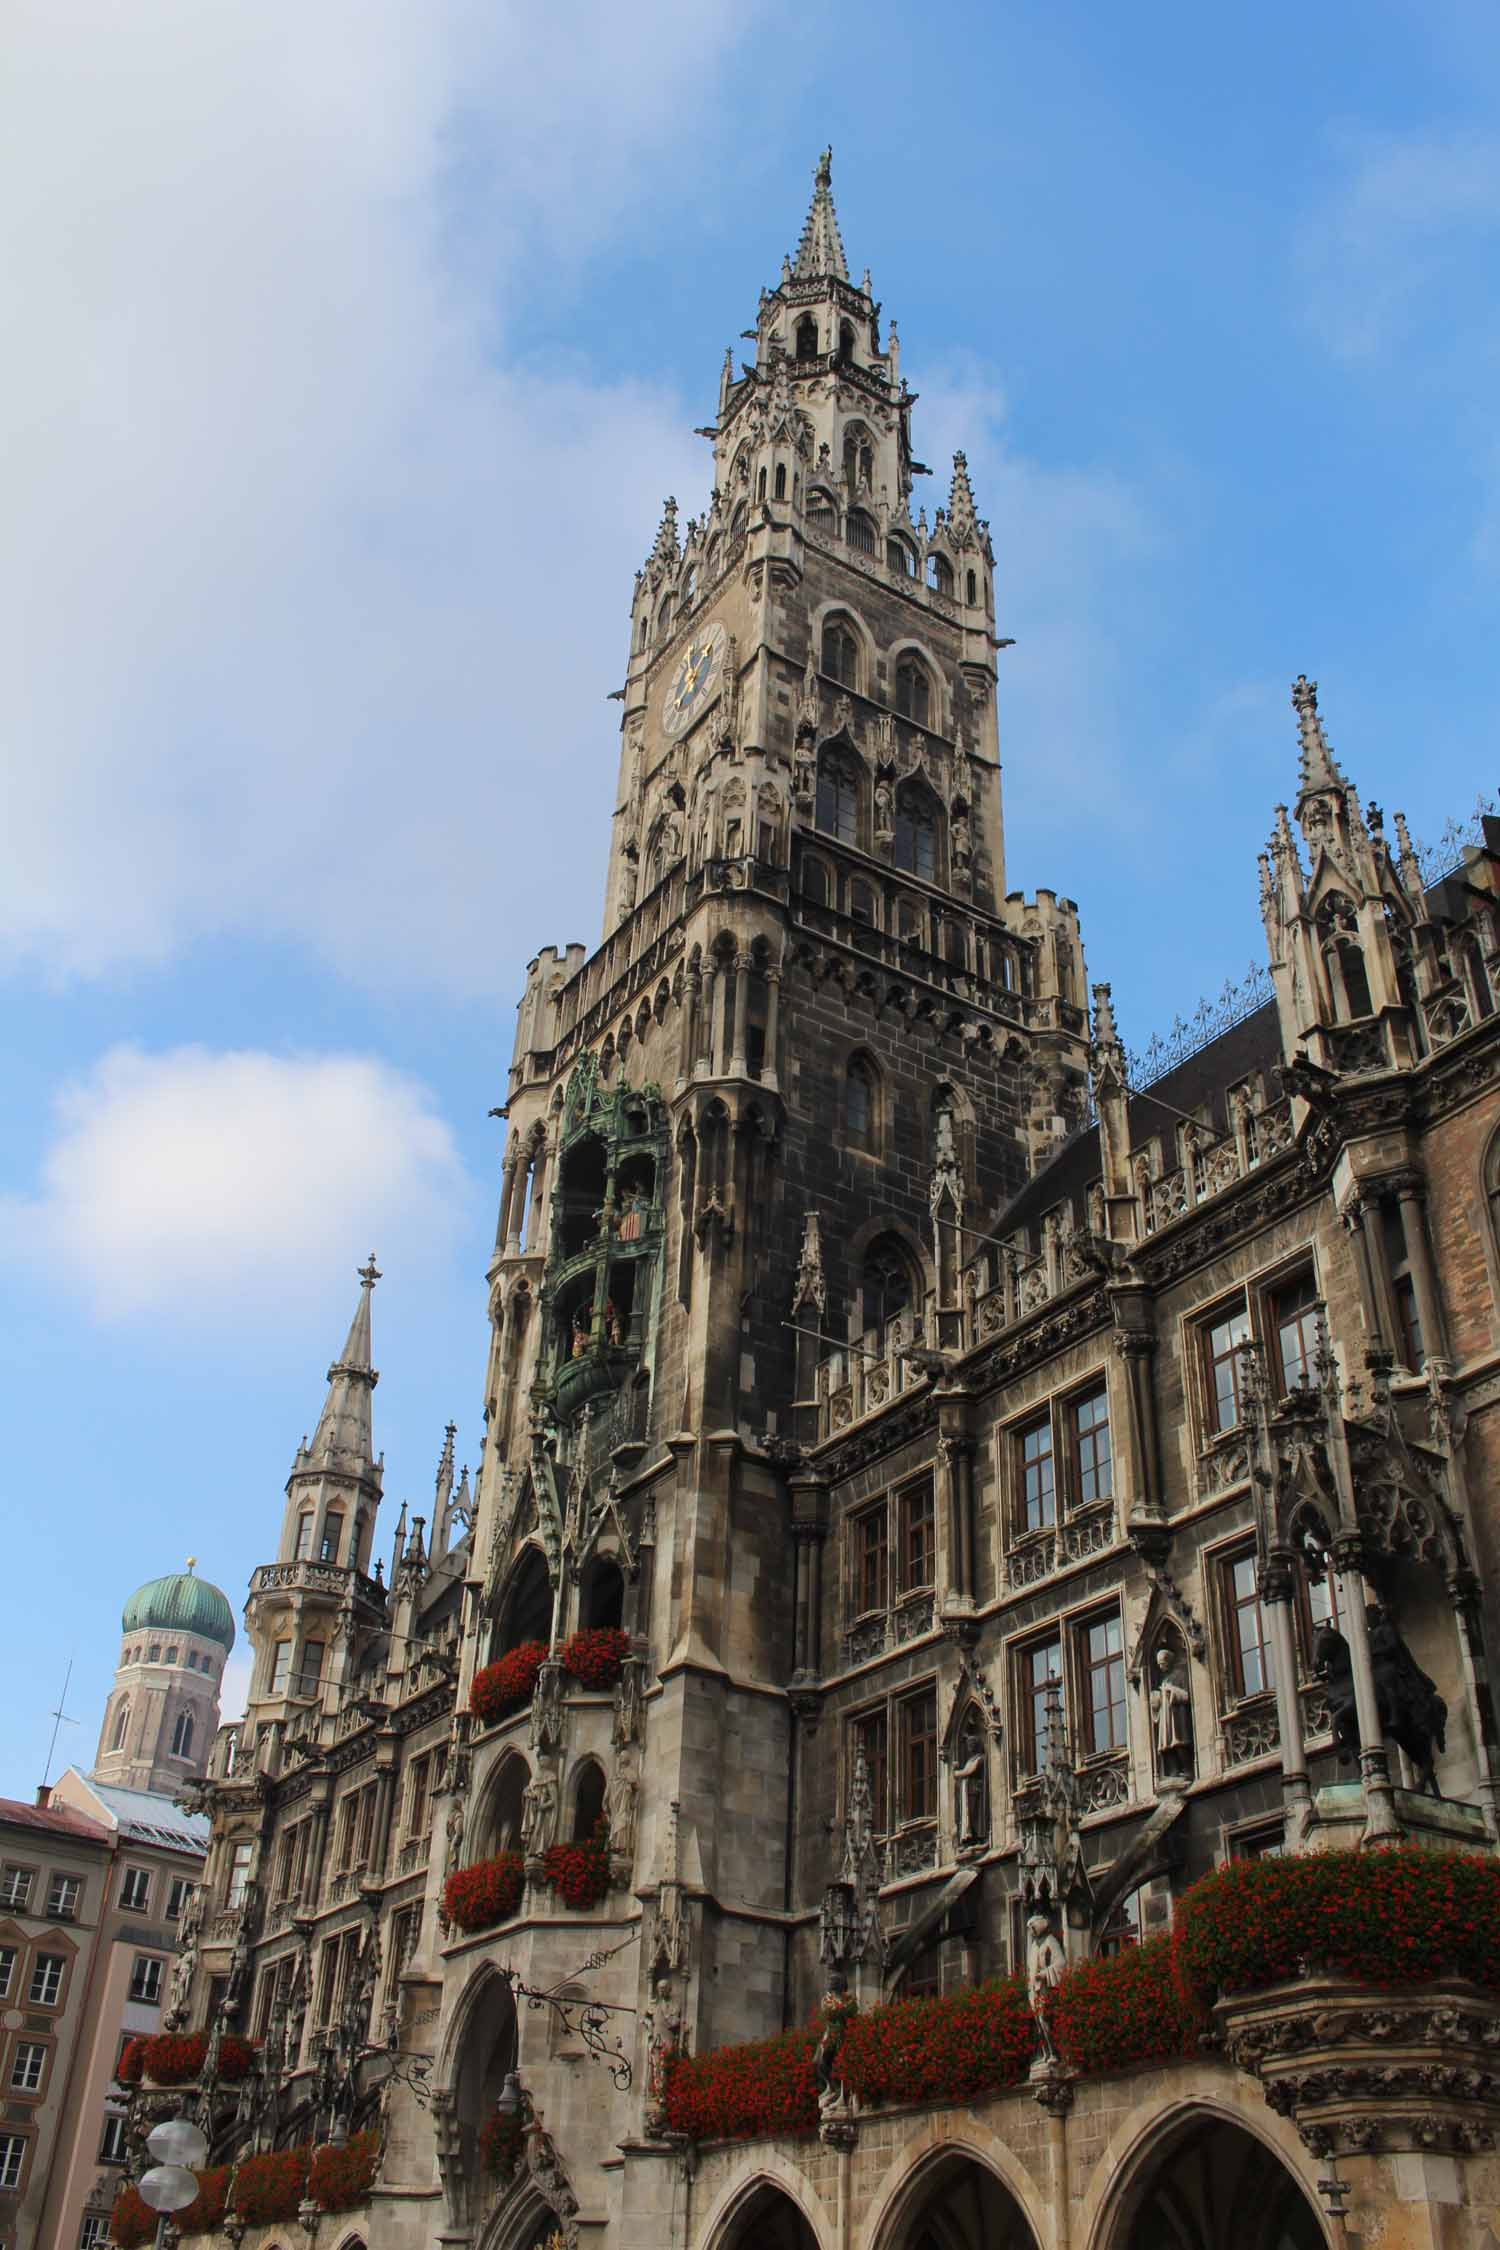 The city hall of Munich